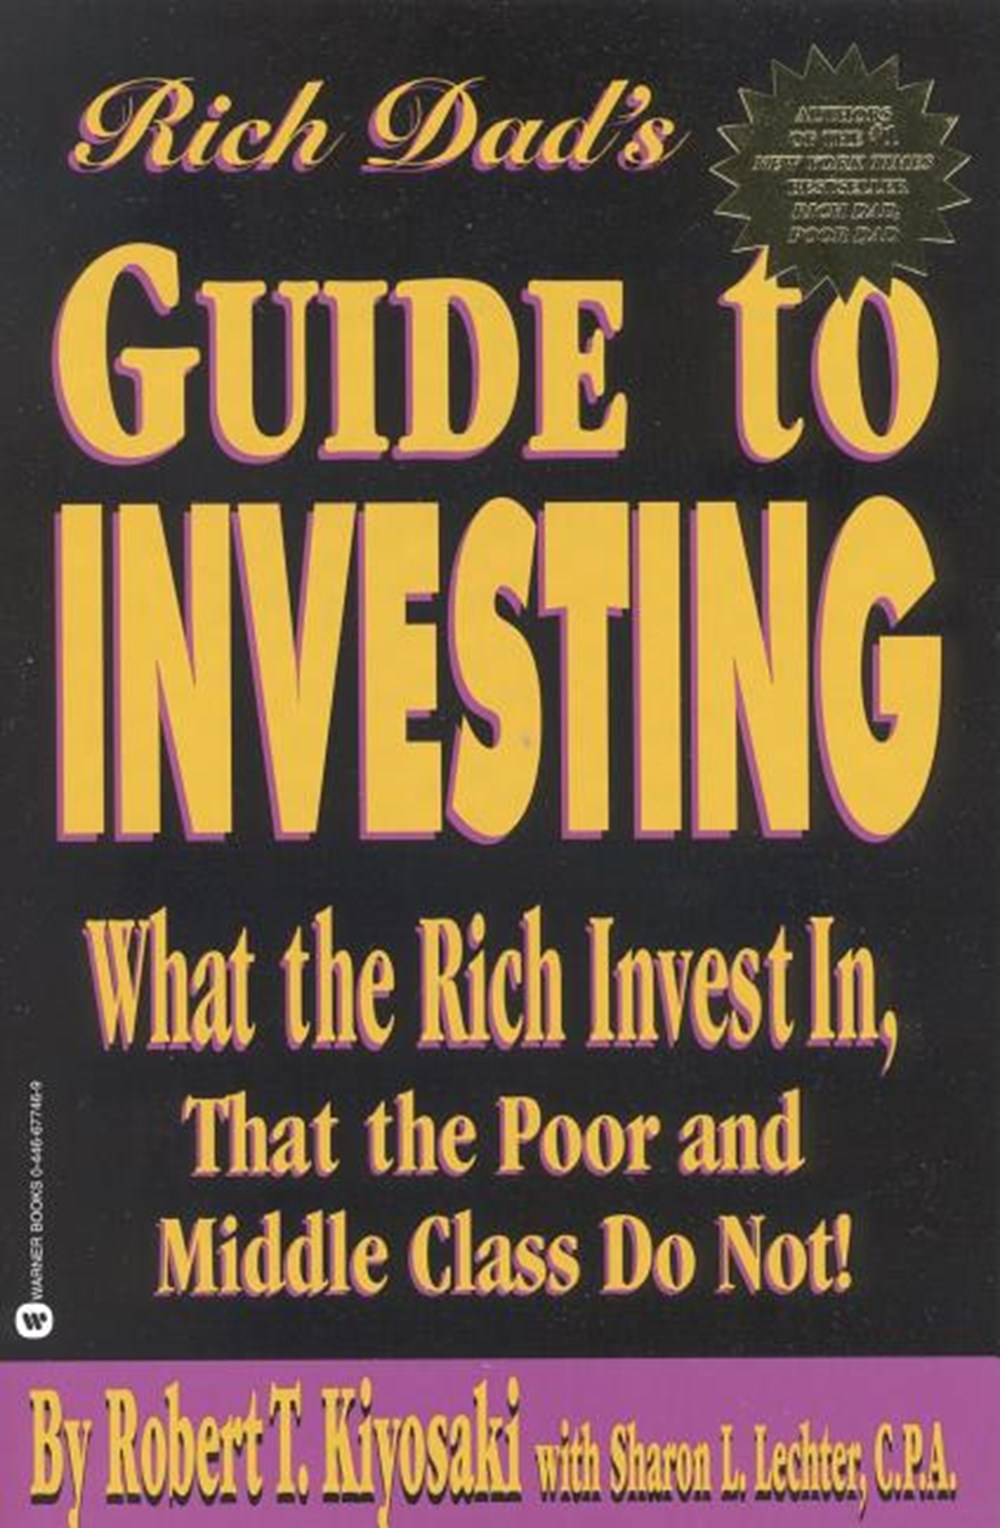 Rich Dad's Guide to Investing What the Rich Invest in That the Poor and Middle Class Do Not!